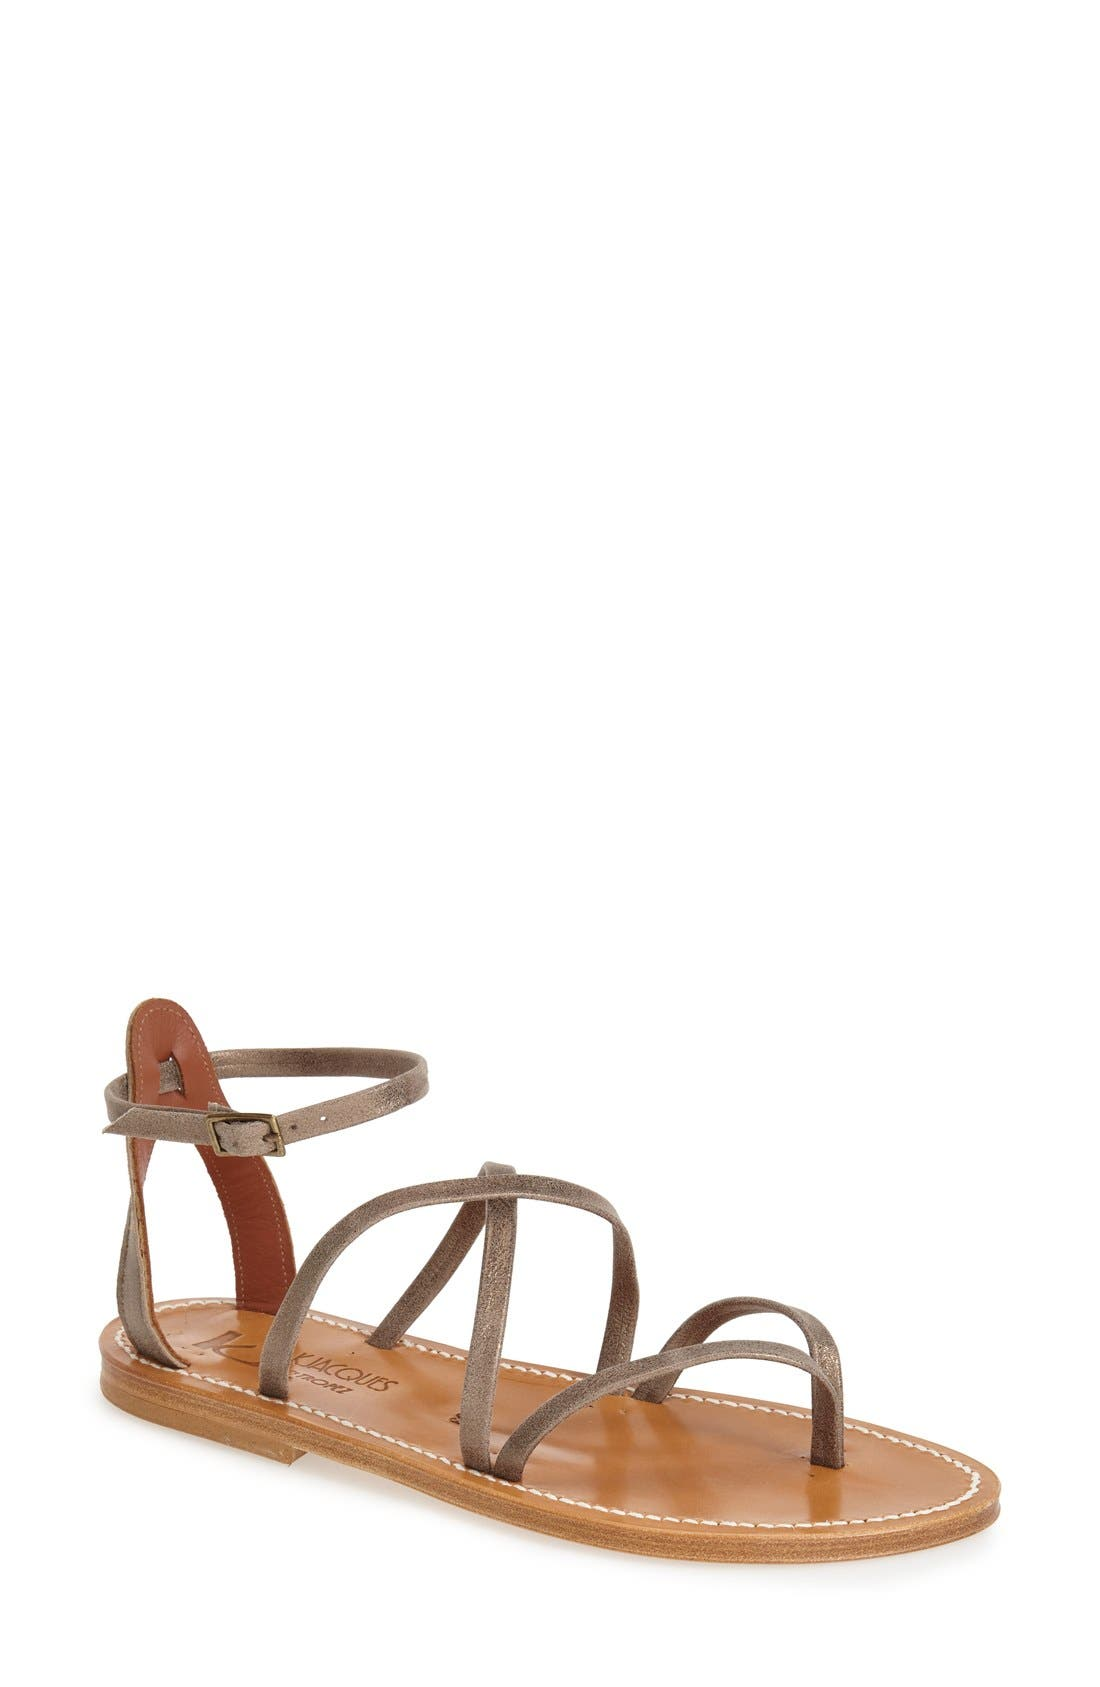 Alternate Image 1 Selected - K.Jacques St. Tropez 'Epicure' Sandal (Women)